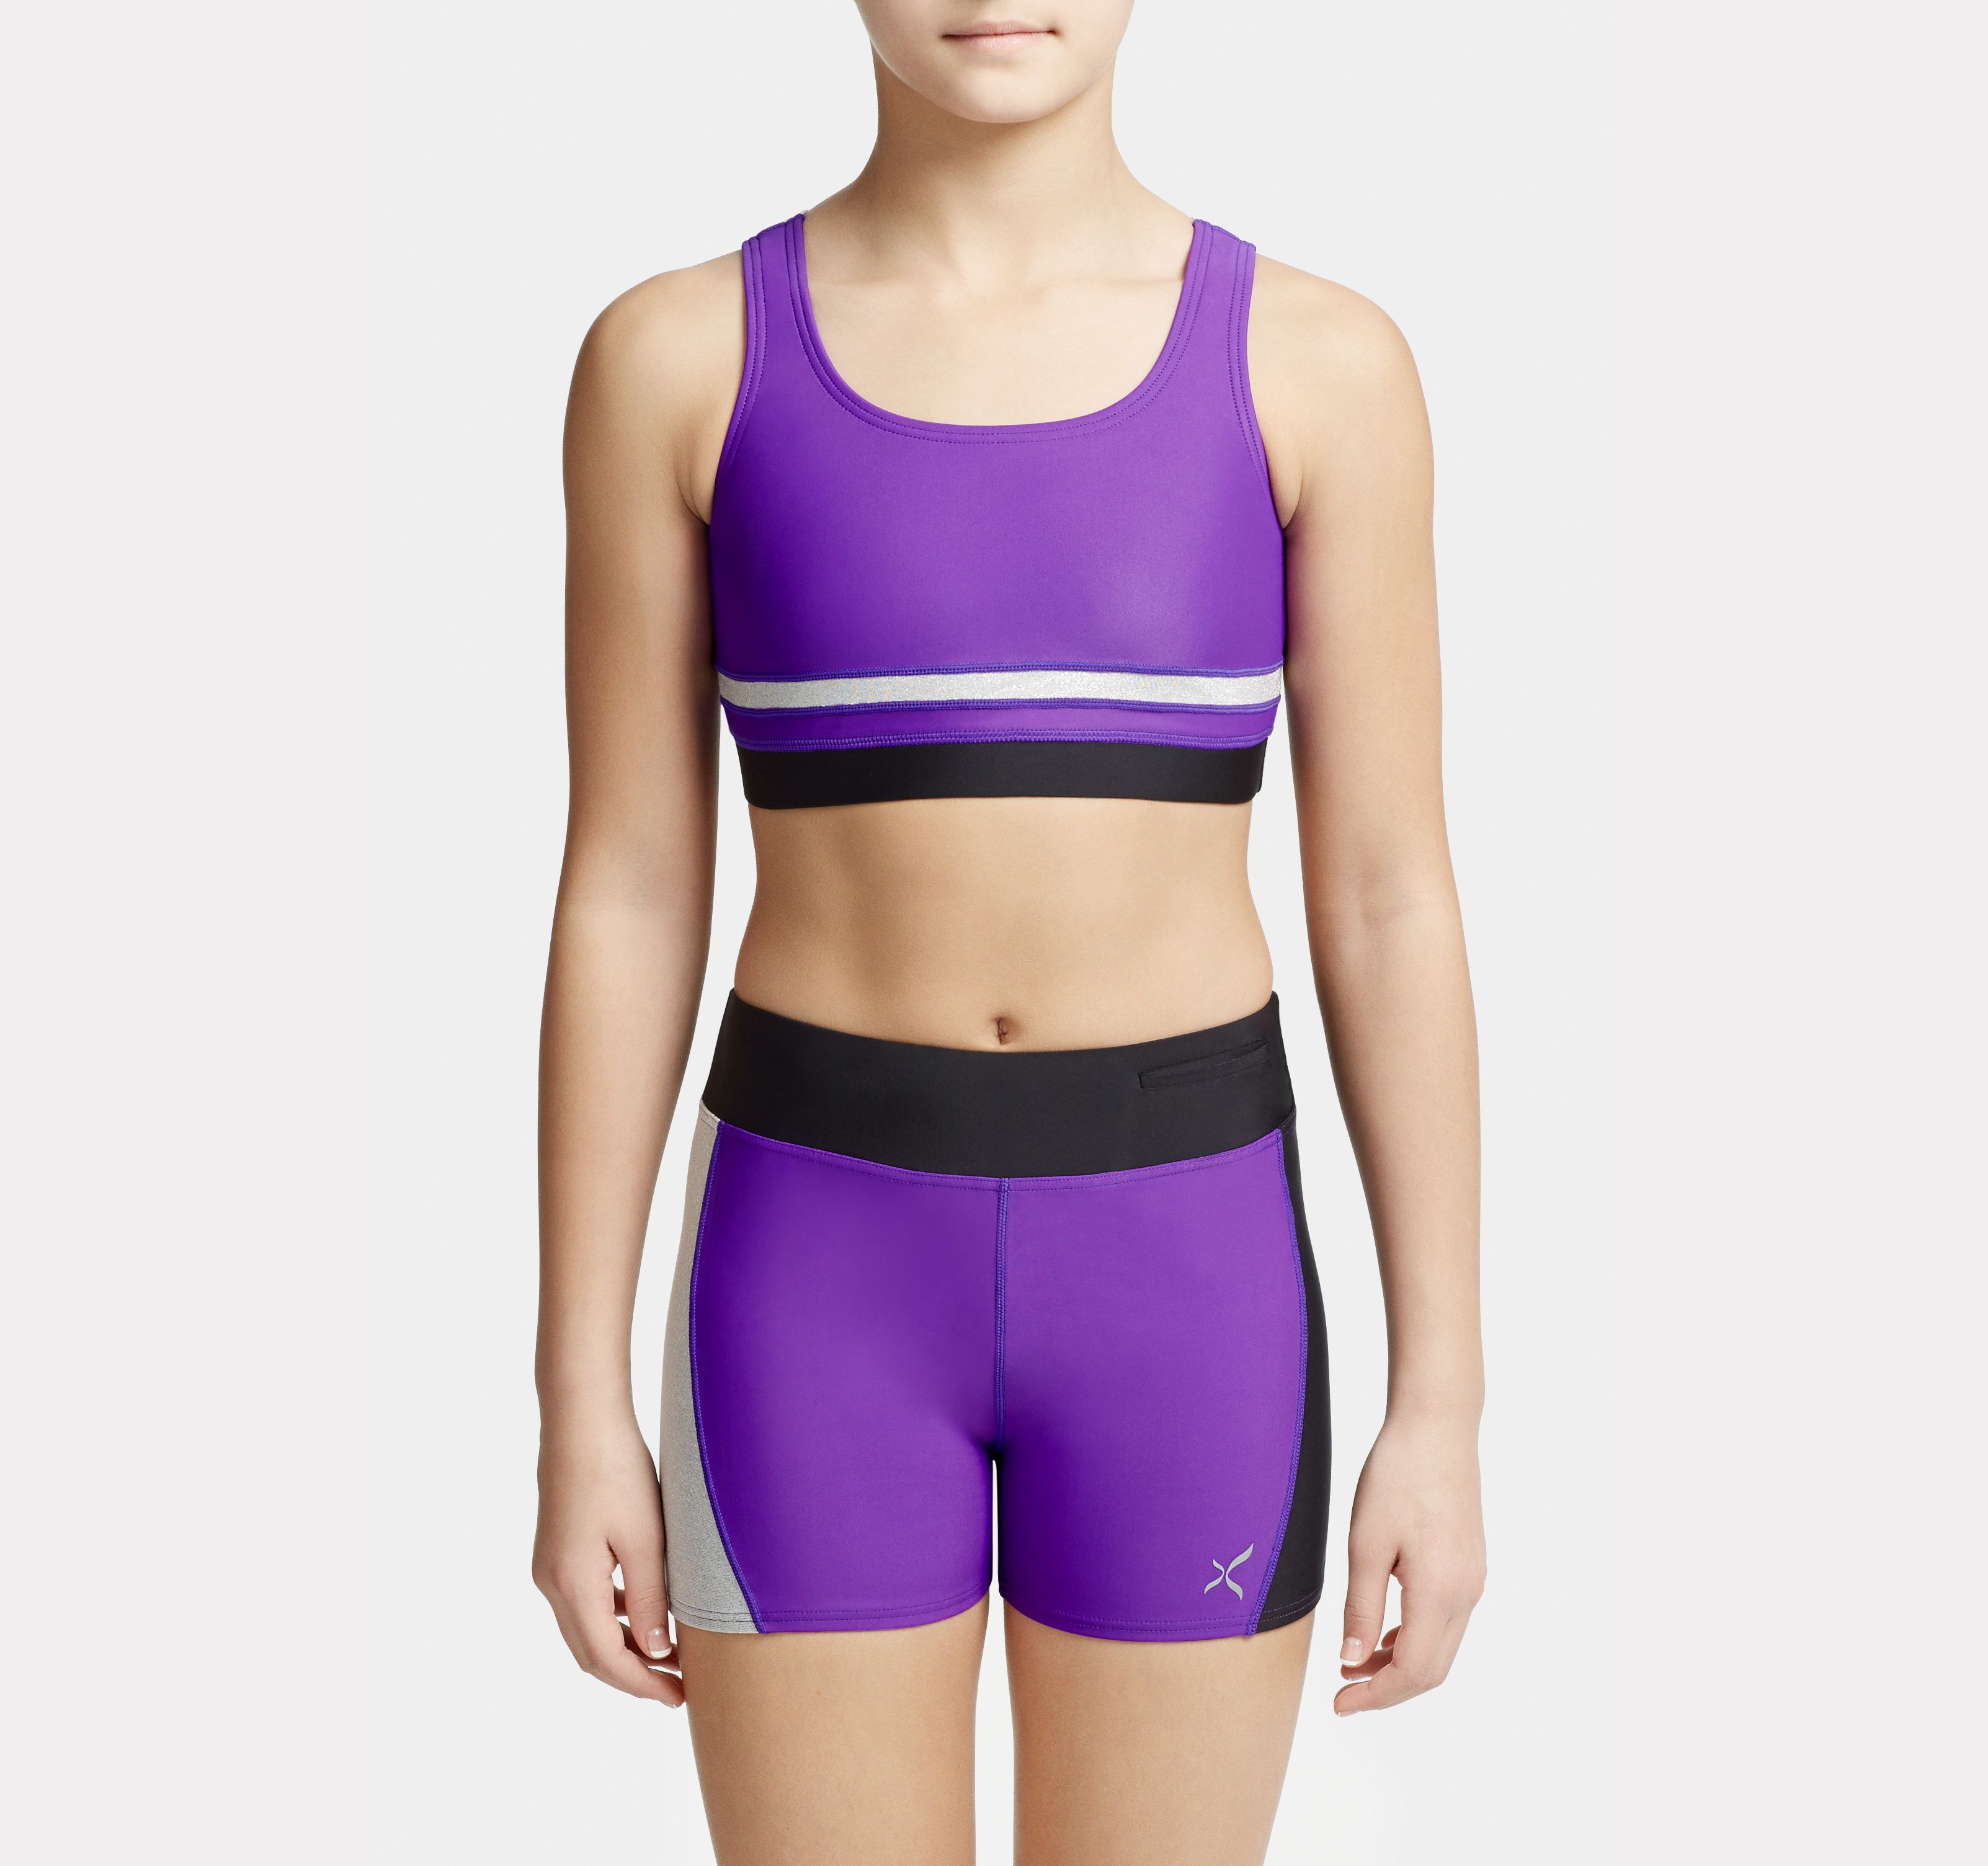 Kids Stick the Landing Racerback Bra Top and Shorts in Purple-Black-Silver  combo by Capezio  11067C-11068C 7afd459e353